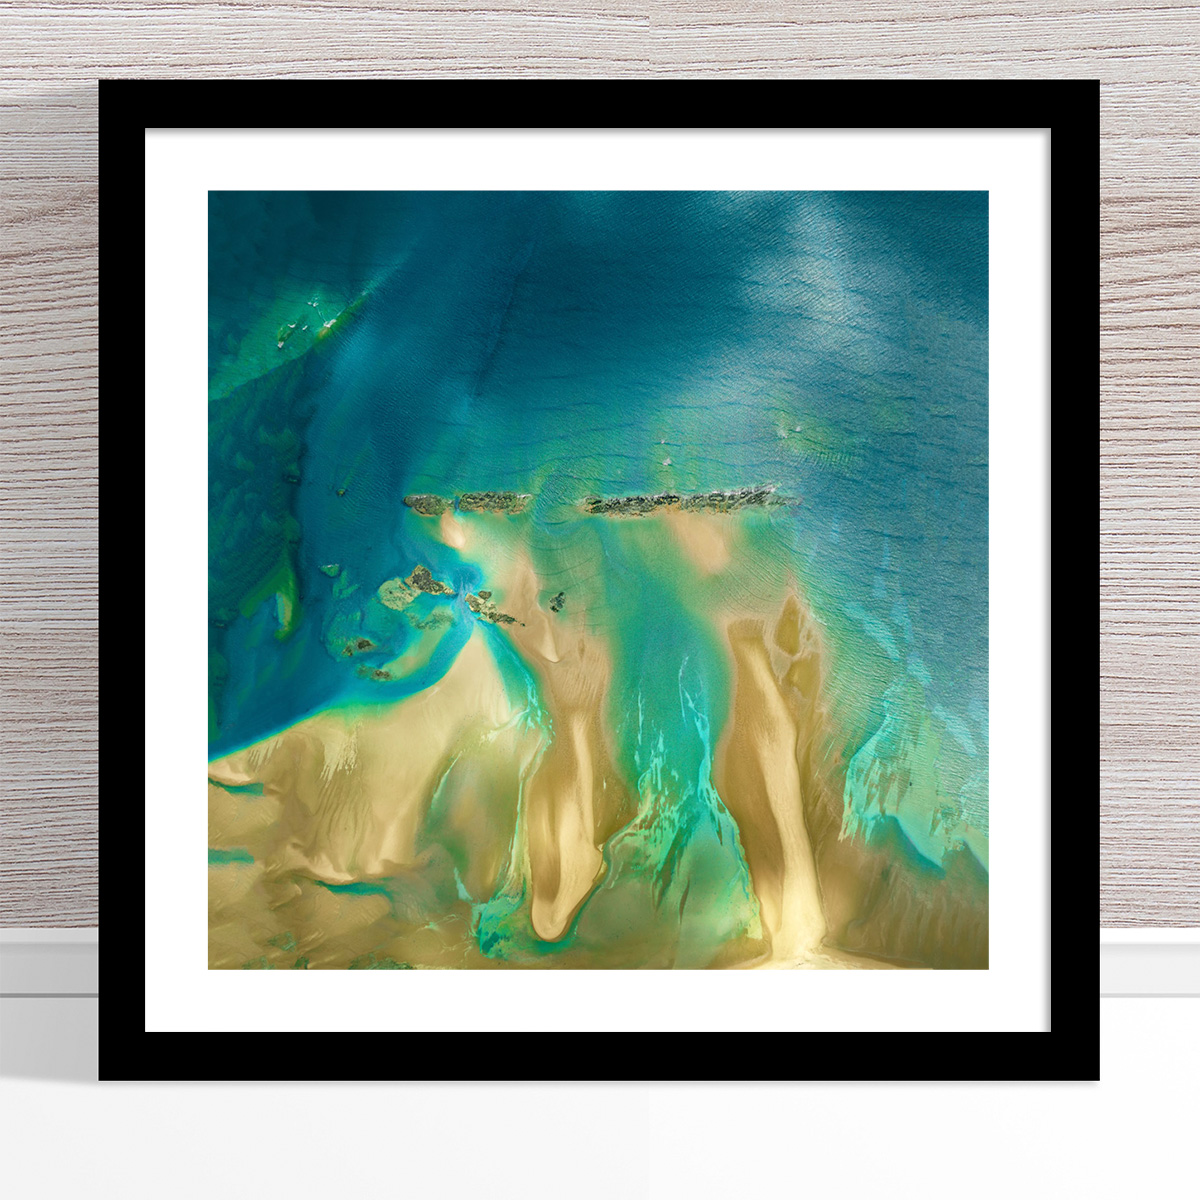 Chris Saunders - 'Aerial Coast 011' Black Frame